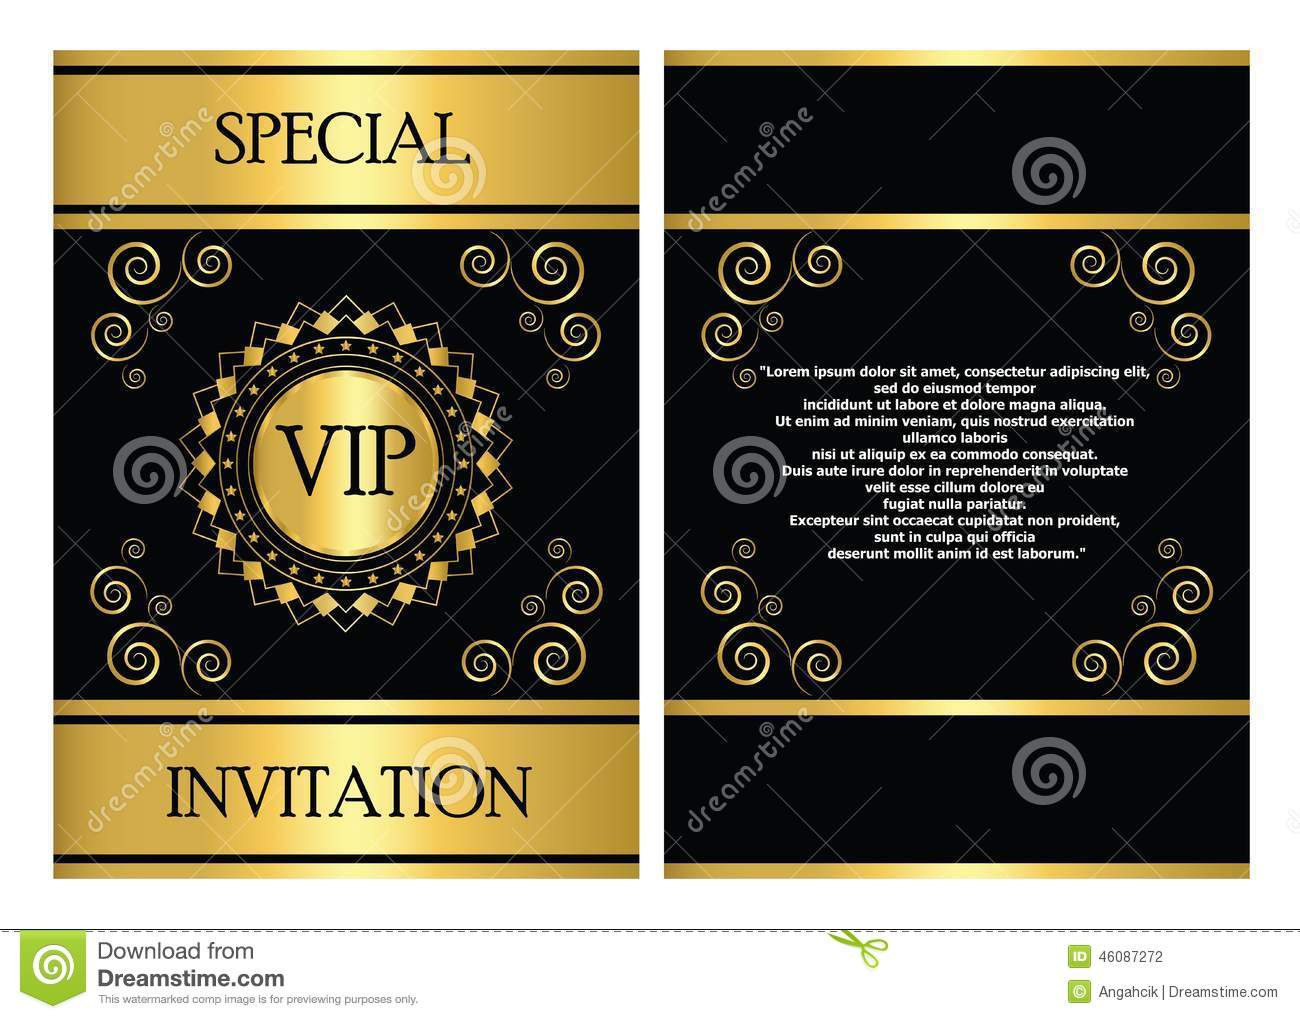 vip invitation card template stock vector image 46087272. Black Bedroom Furniture Sets. Home Design Ideas